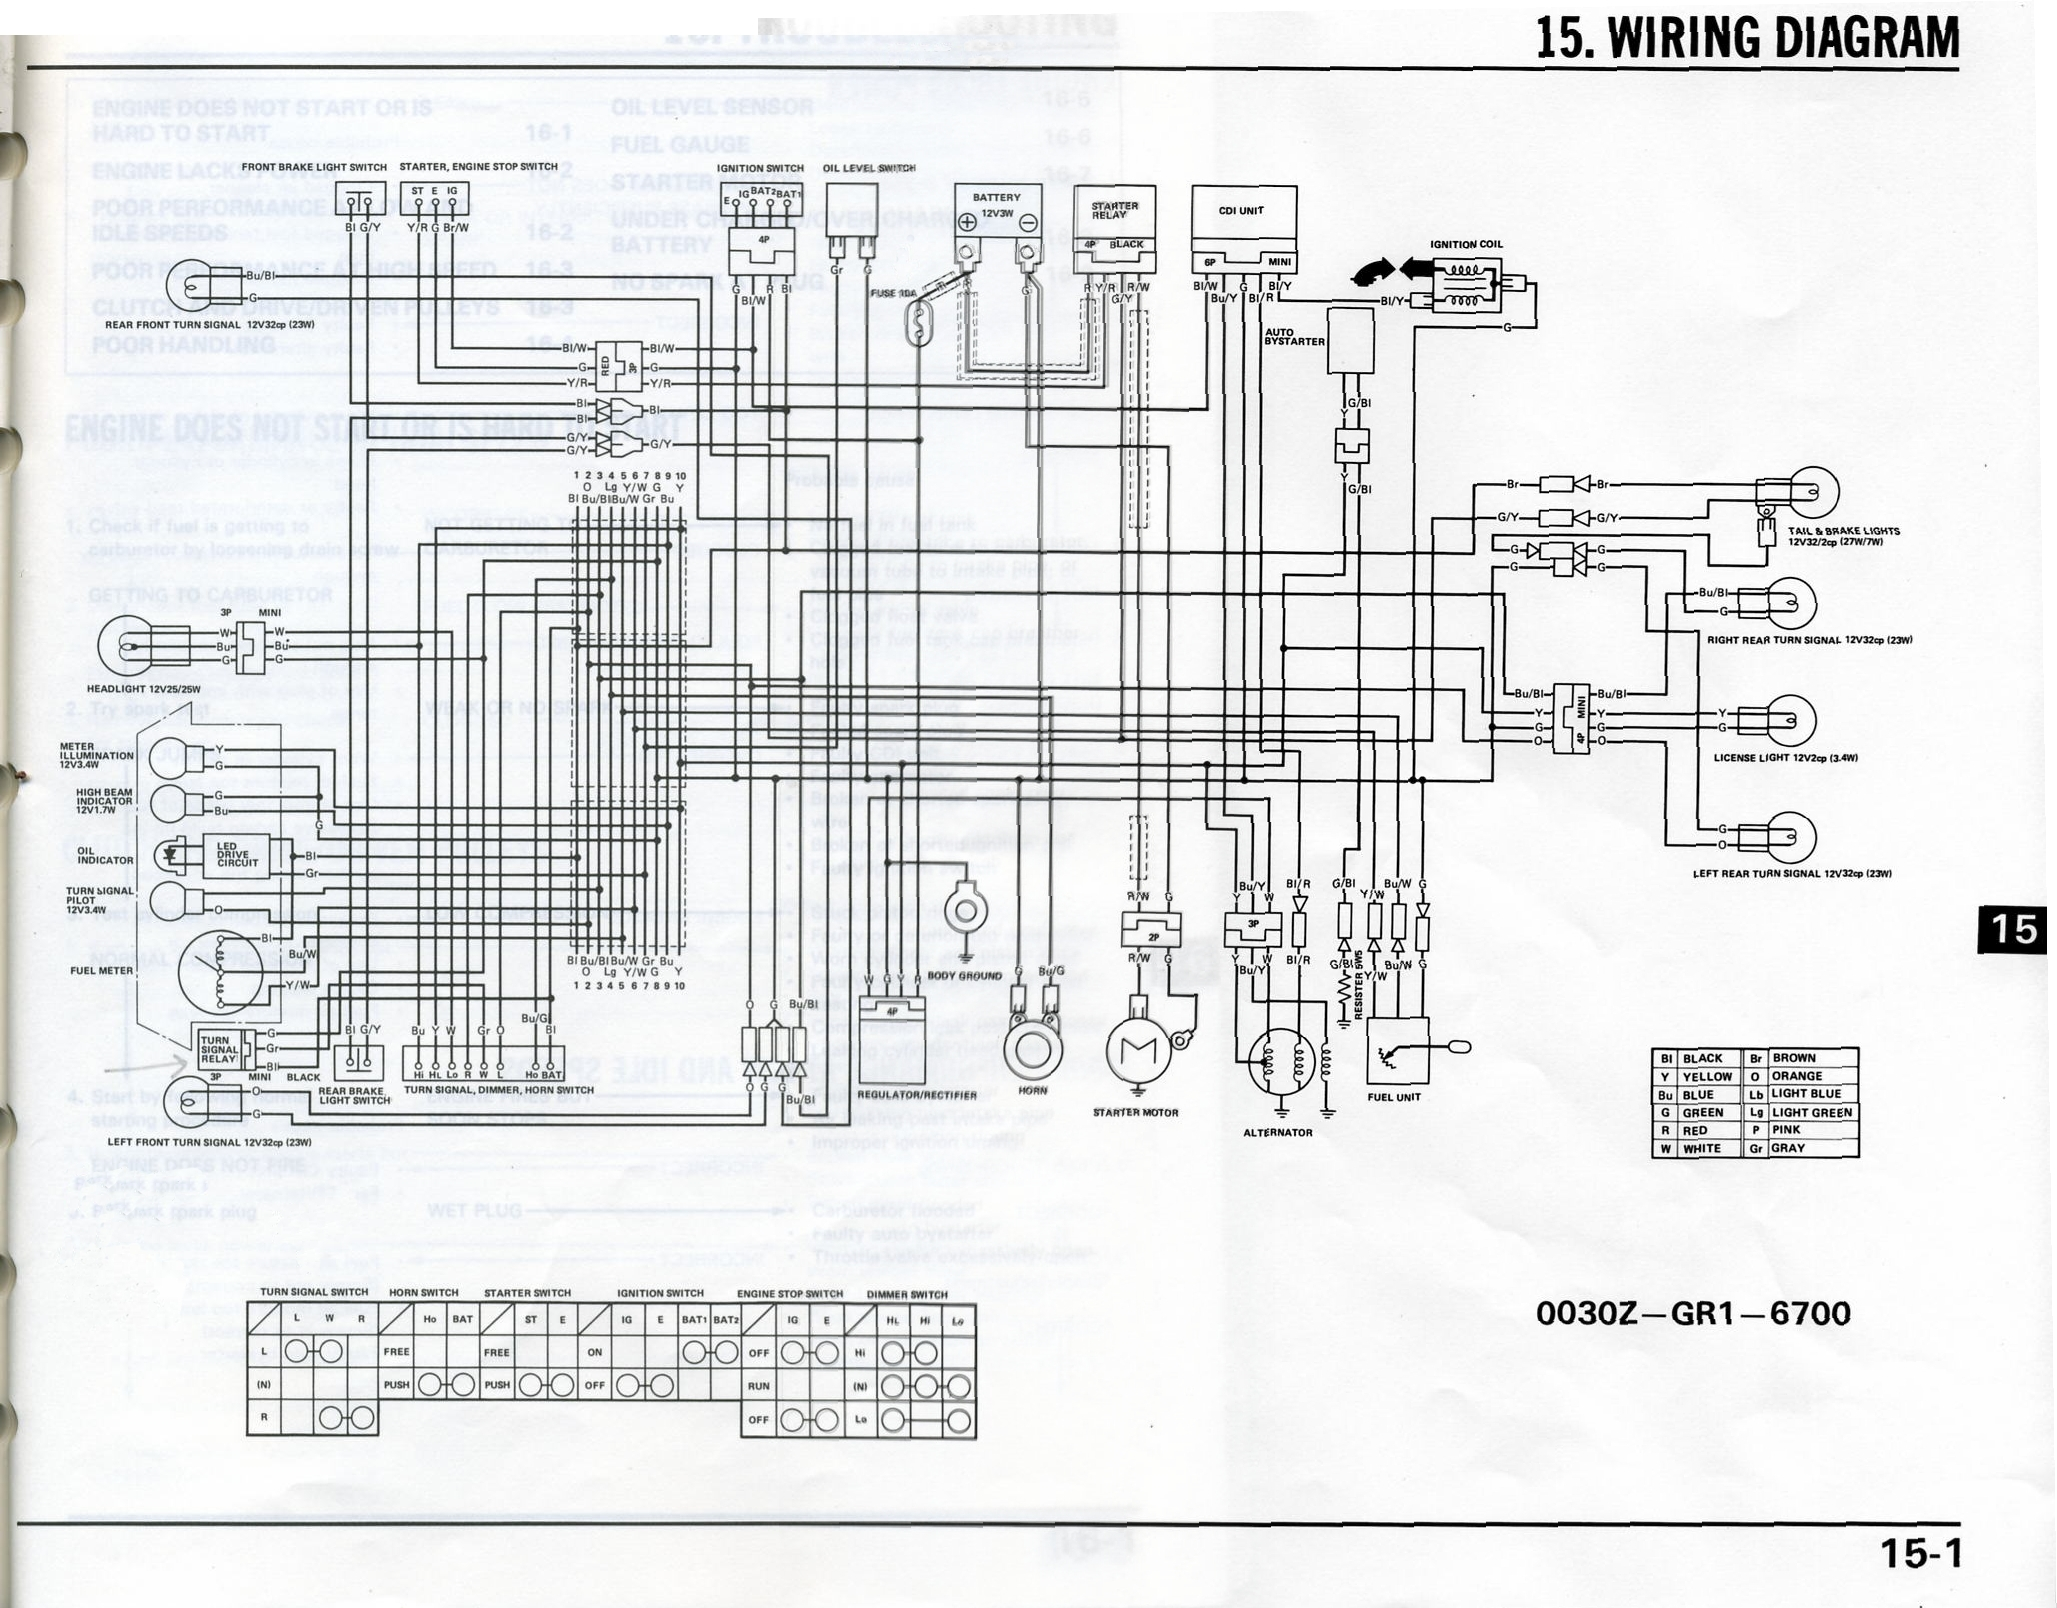 GCGA_3687] Honda Elite 50 Wiring Diagram Diagram Database Website Wiring  Diagram - DOTDIAGRAM.ROCKSTYLE.ES